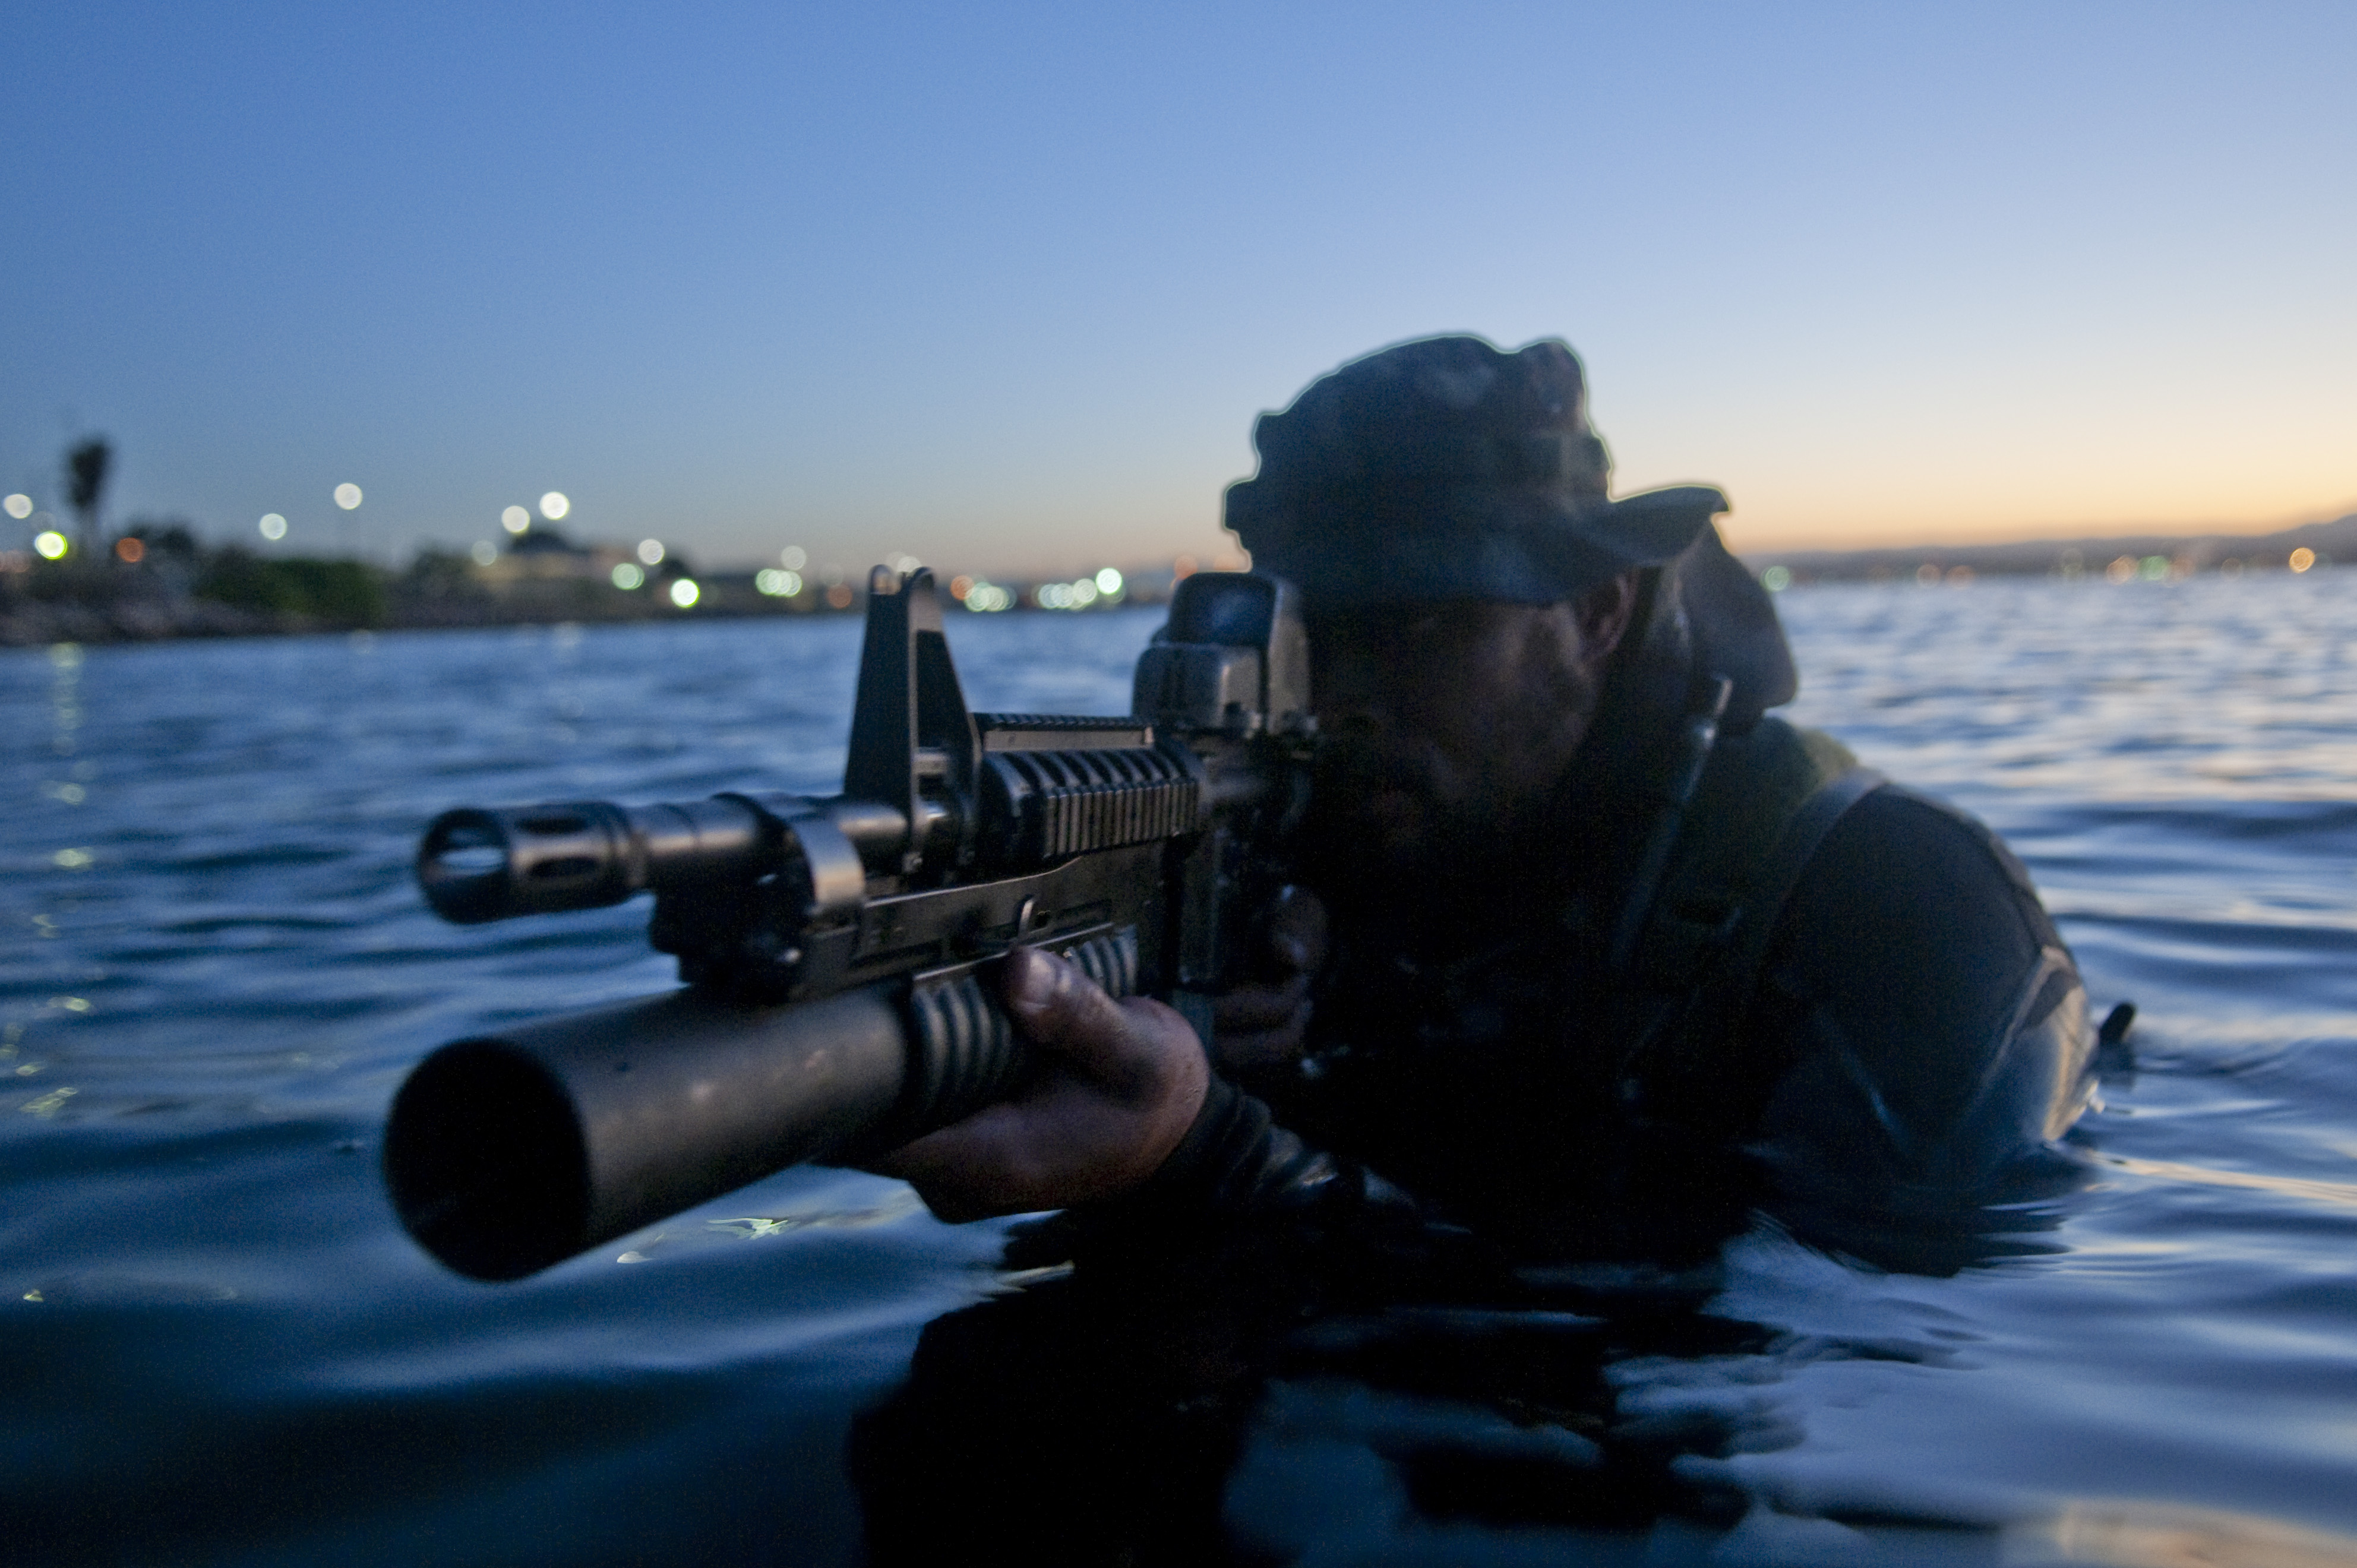 New Maritime Technology for Navy SEALs on the Way  |Navy Seals Emerging From Water